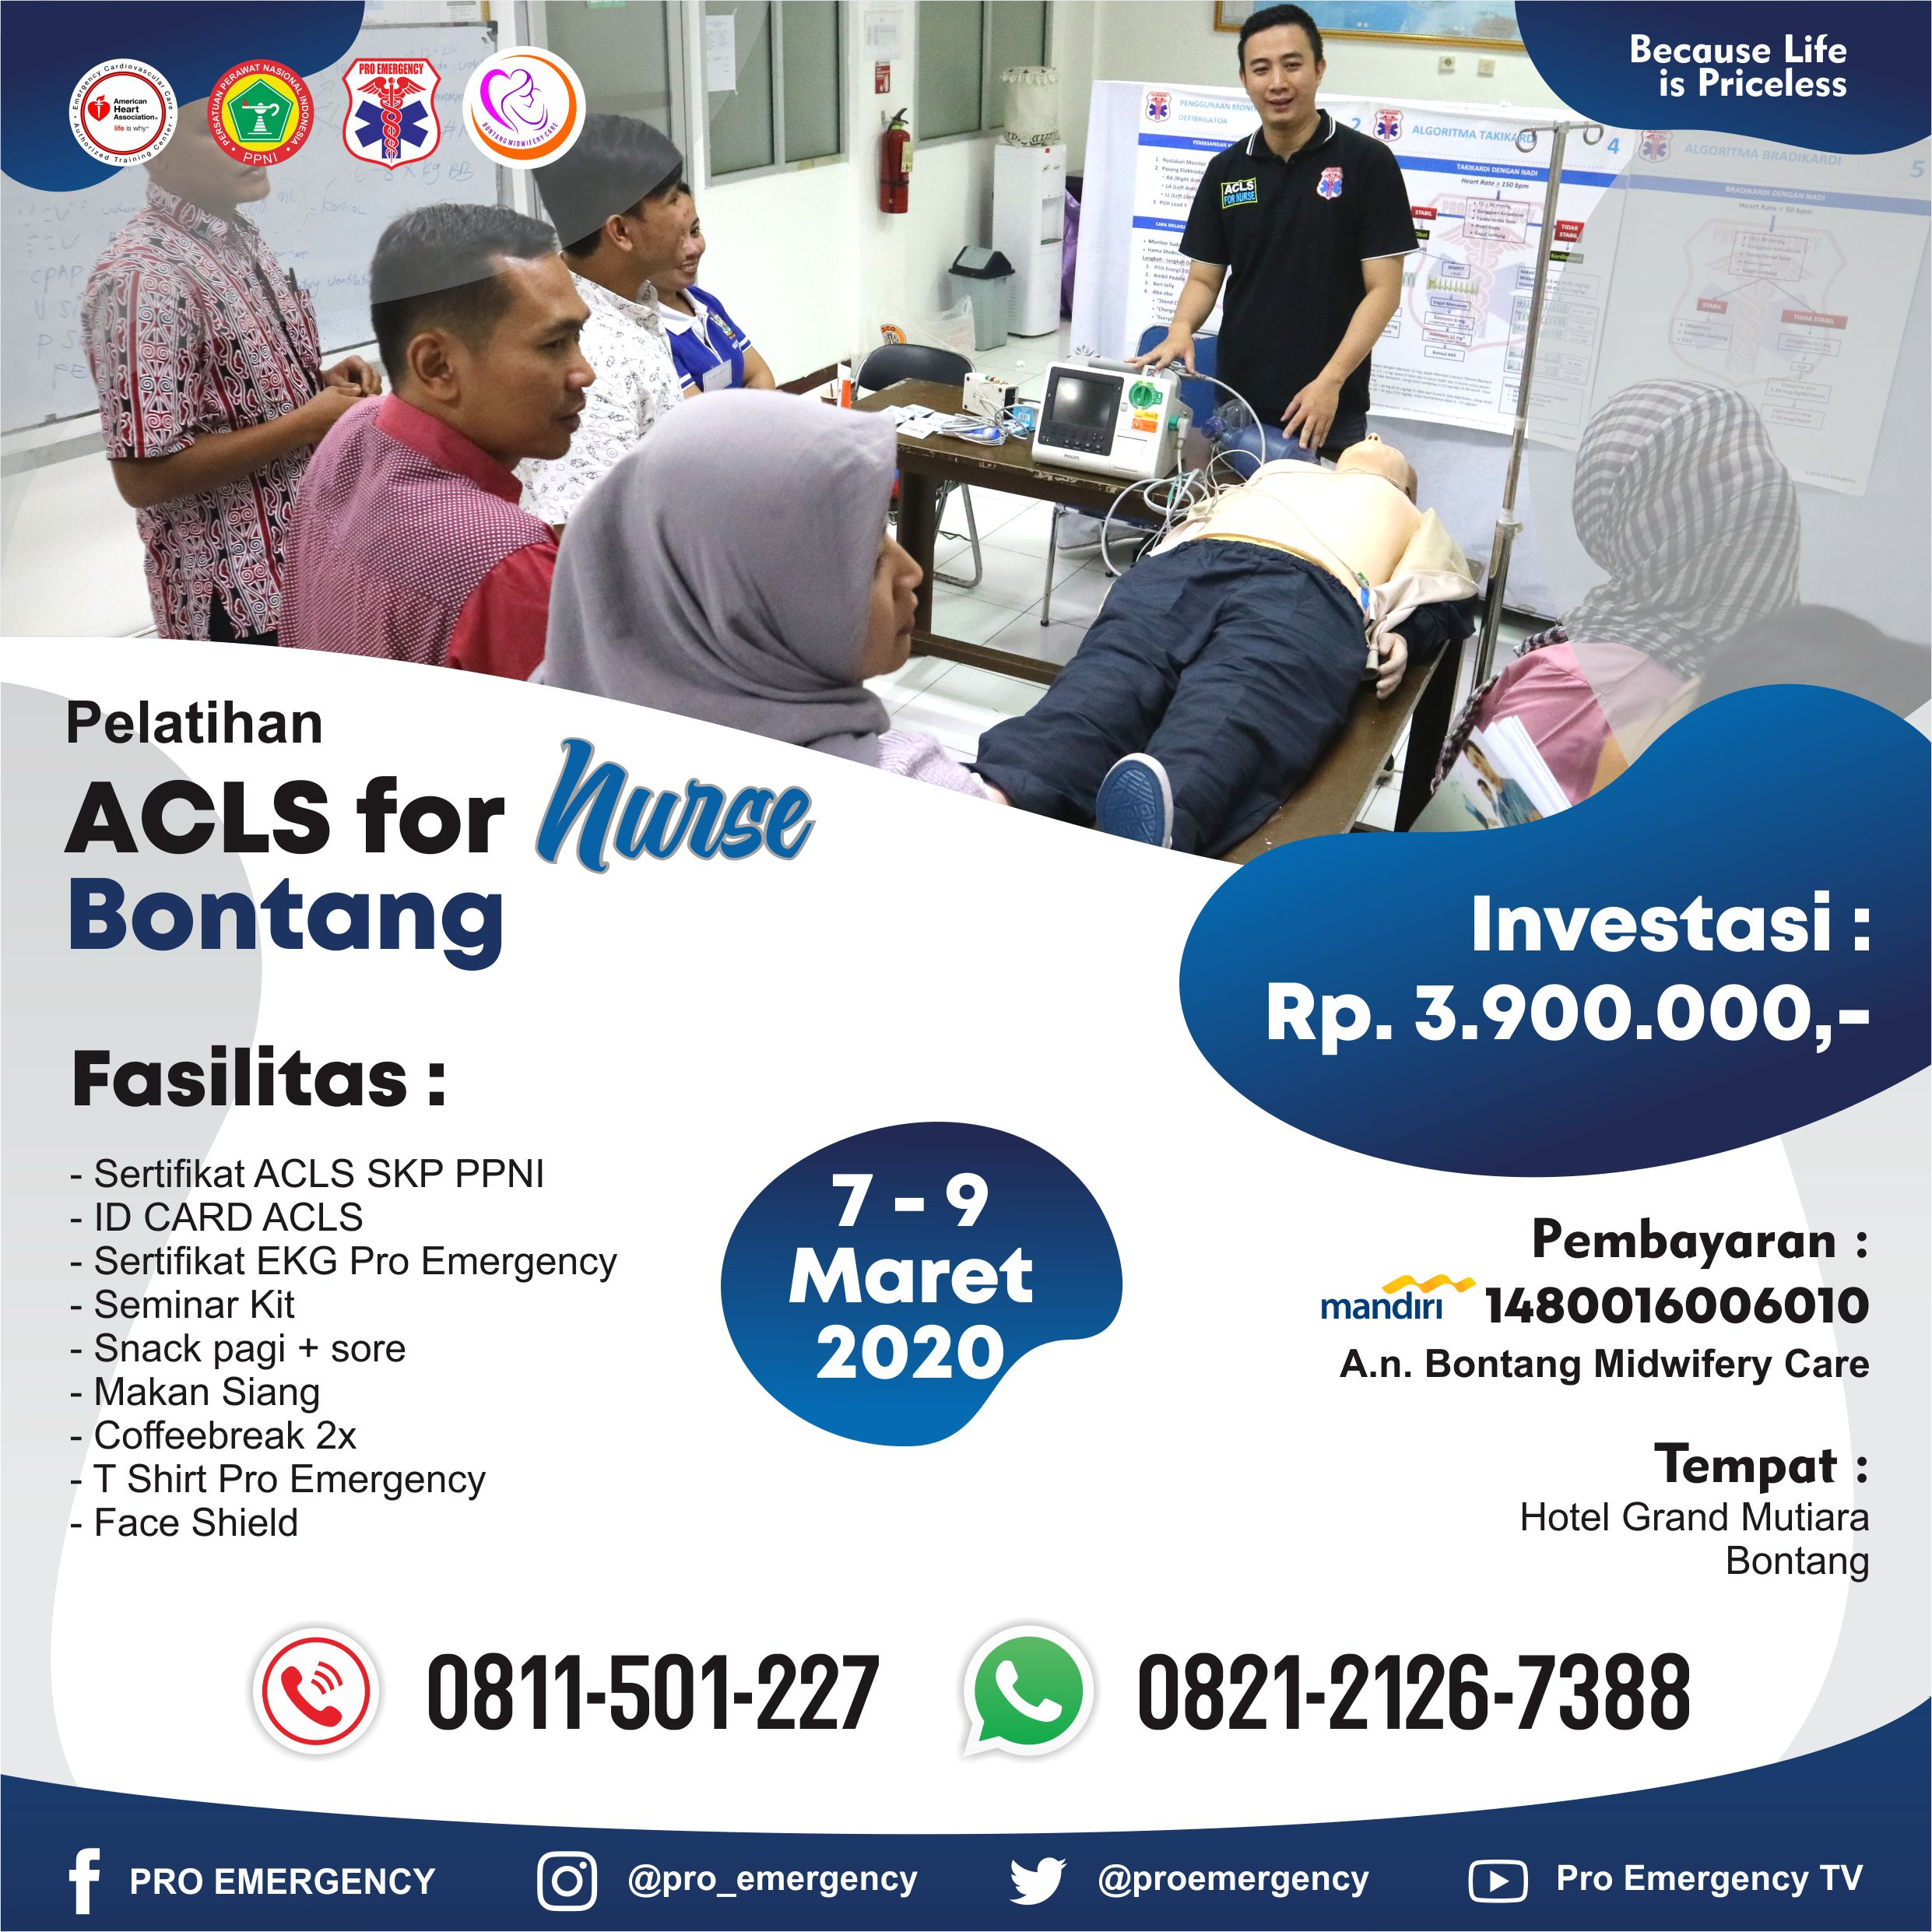 ACLS FOR NURSE 7 - 9 MARET 2020 PRO EMERGENCY BONTANG